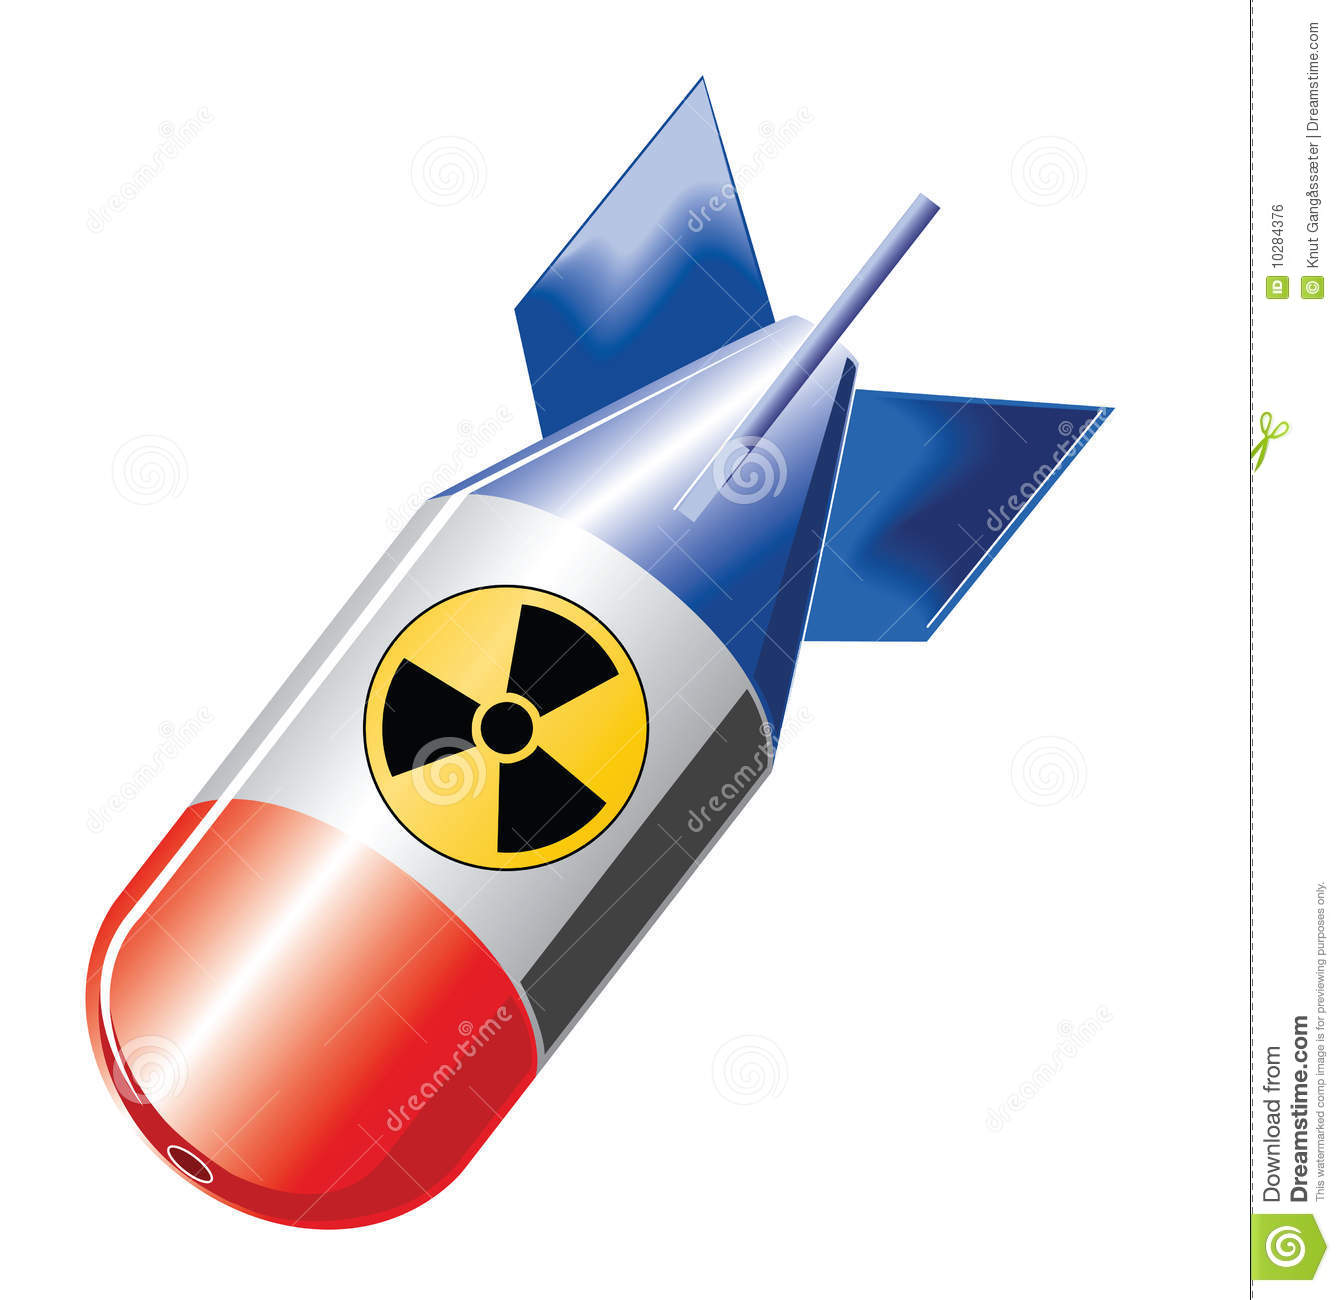 Nuclear Bomb Royalty Free Stock Image.